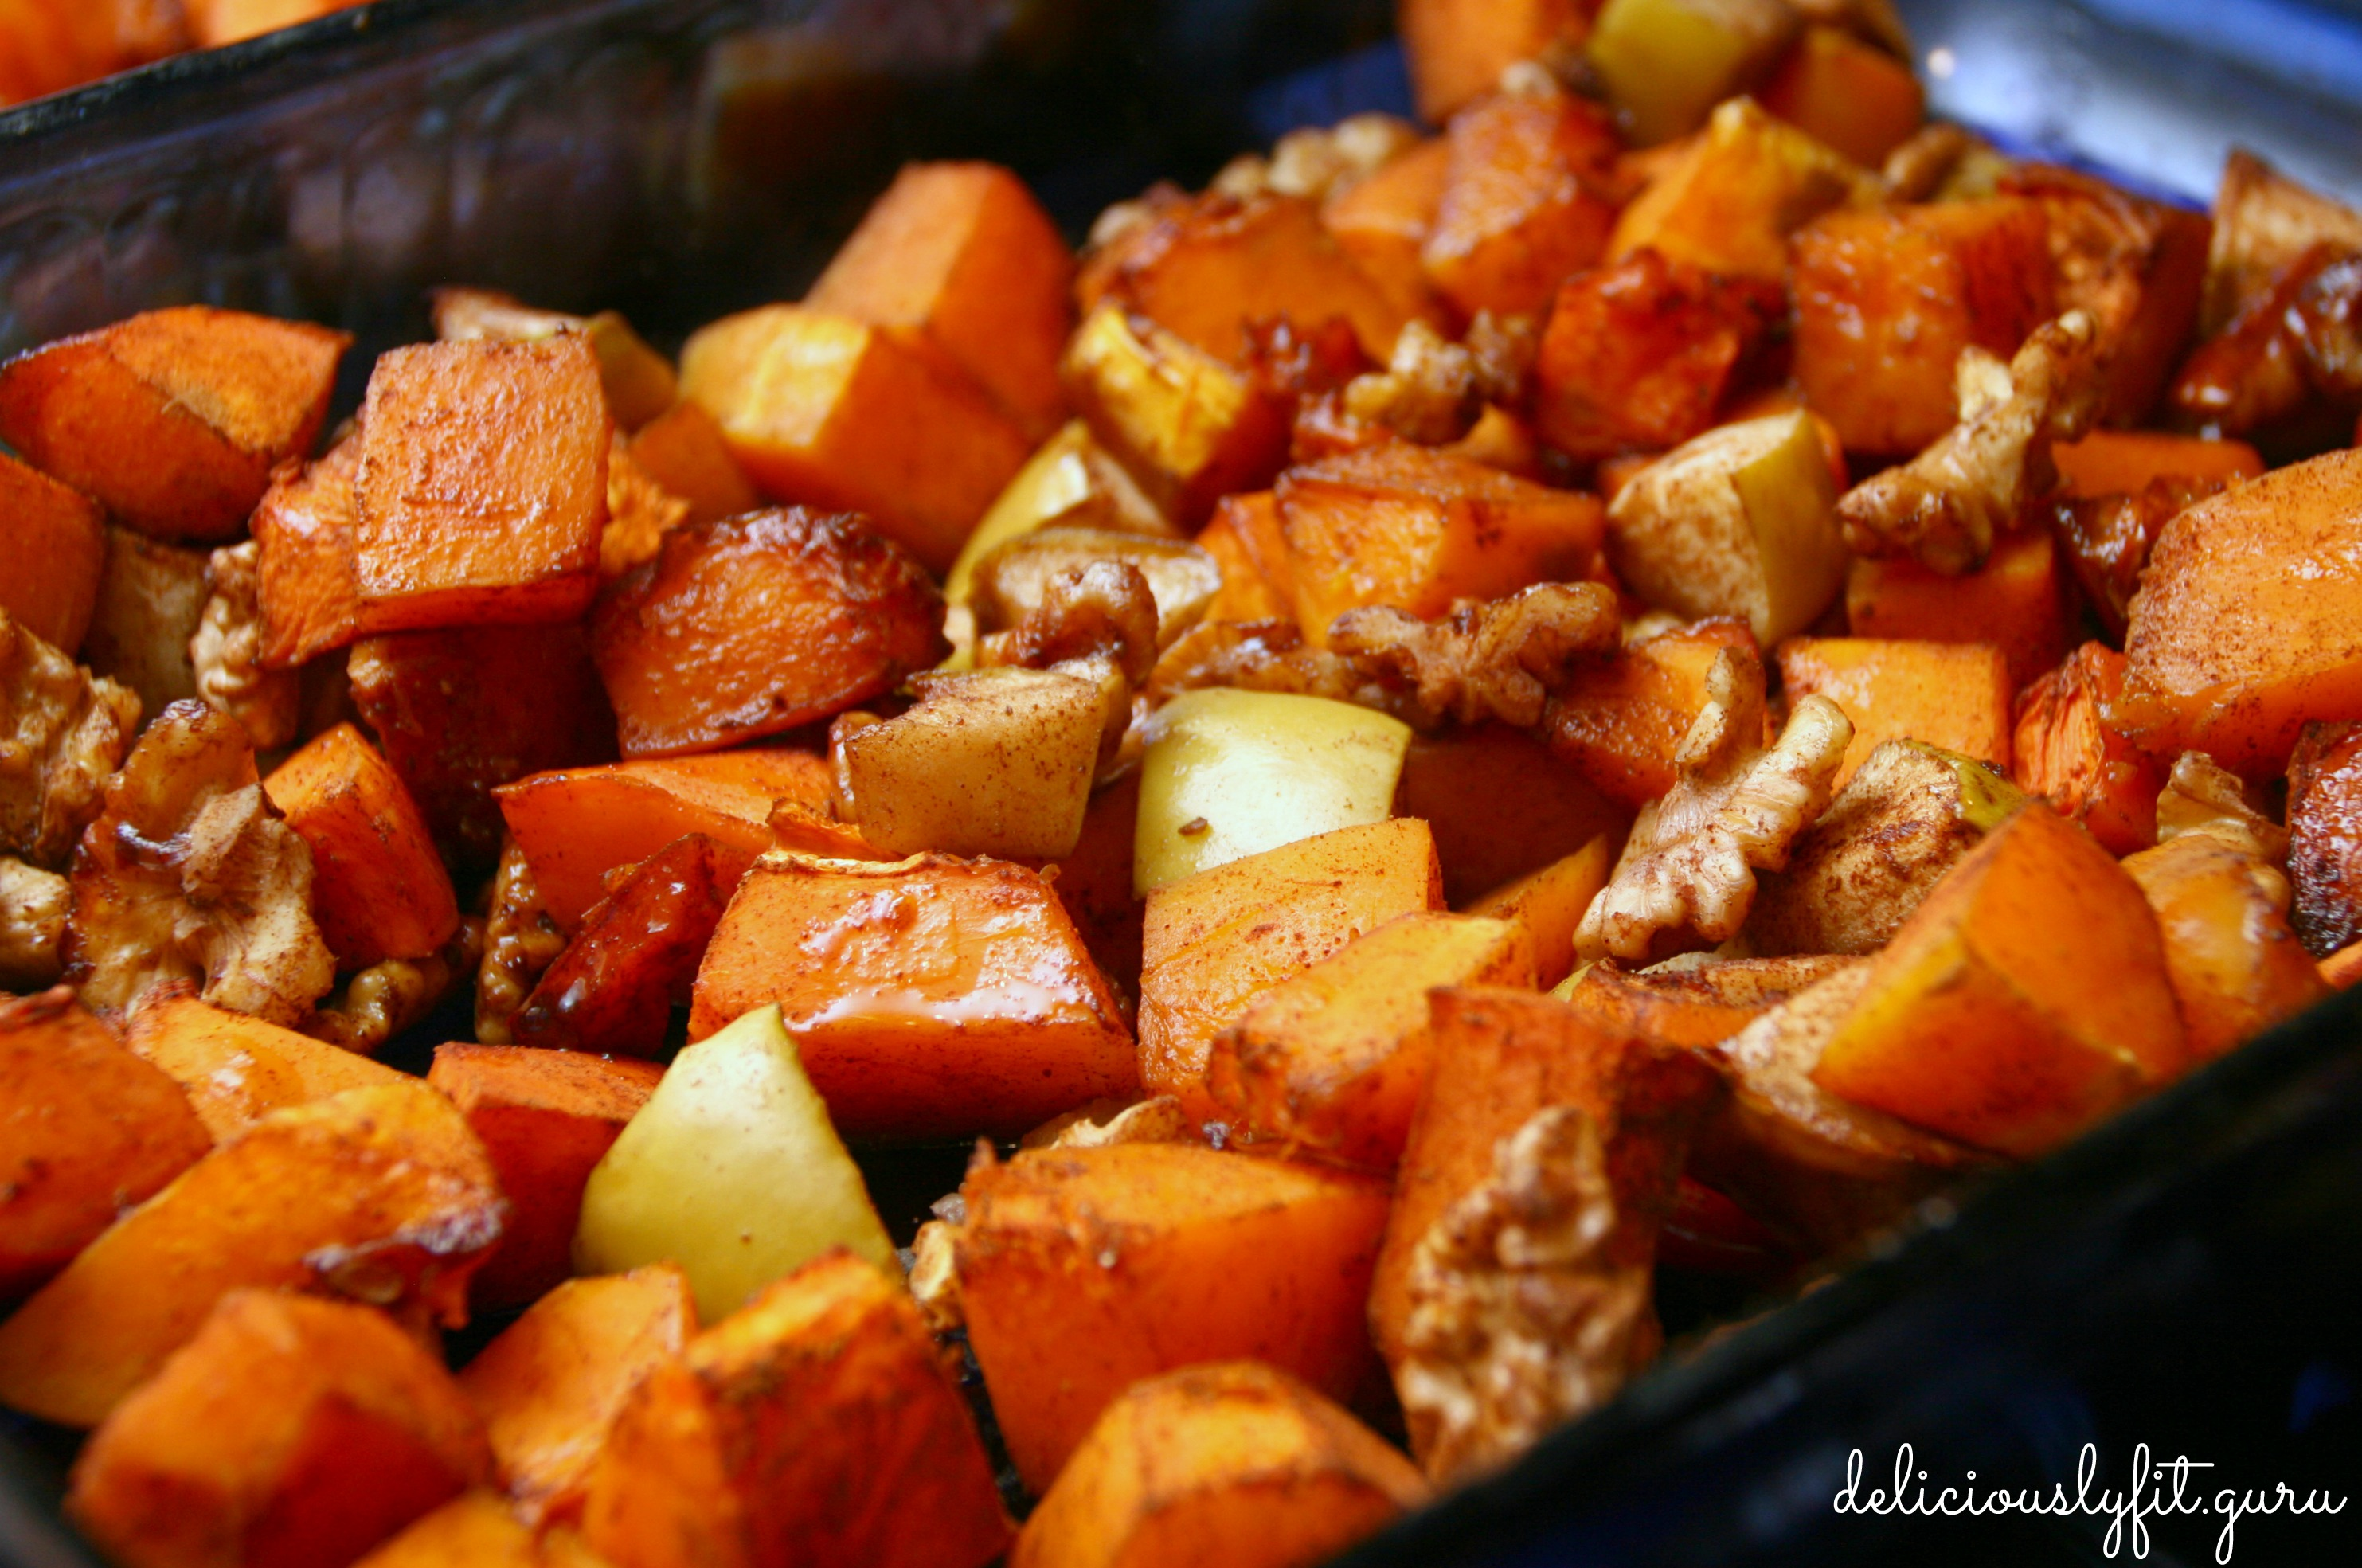 Roasted Butternut Squash with Apples and Walnuts - Deliciously Fit